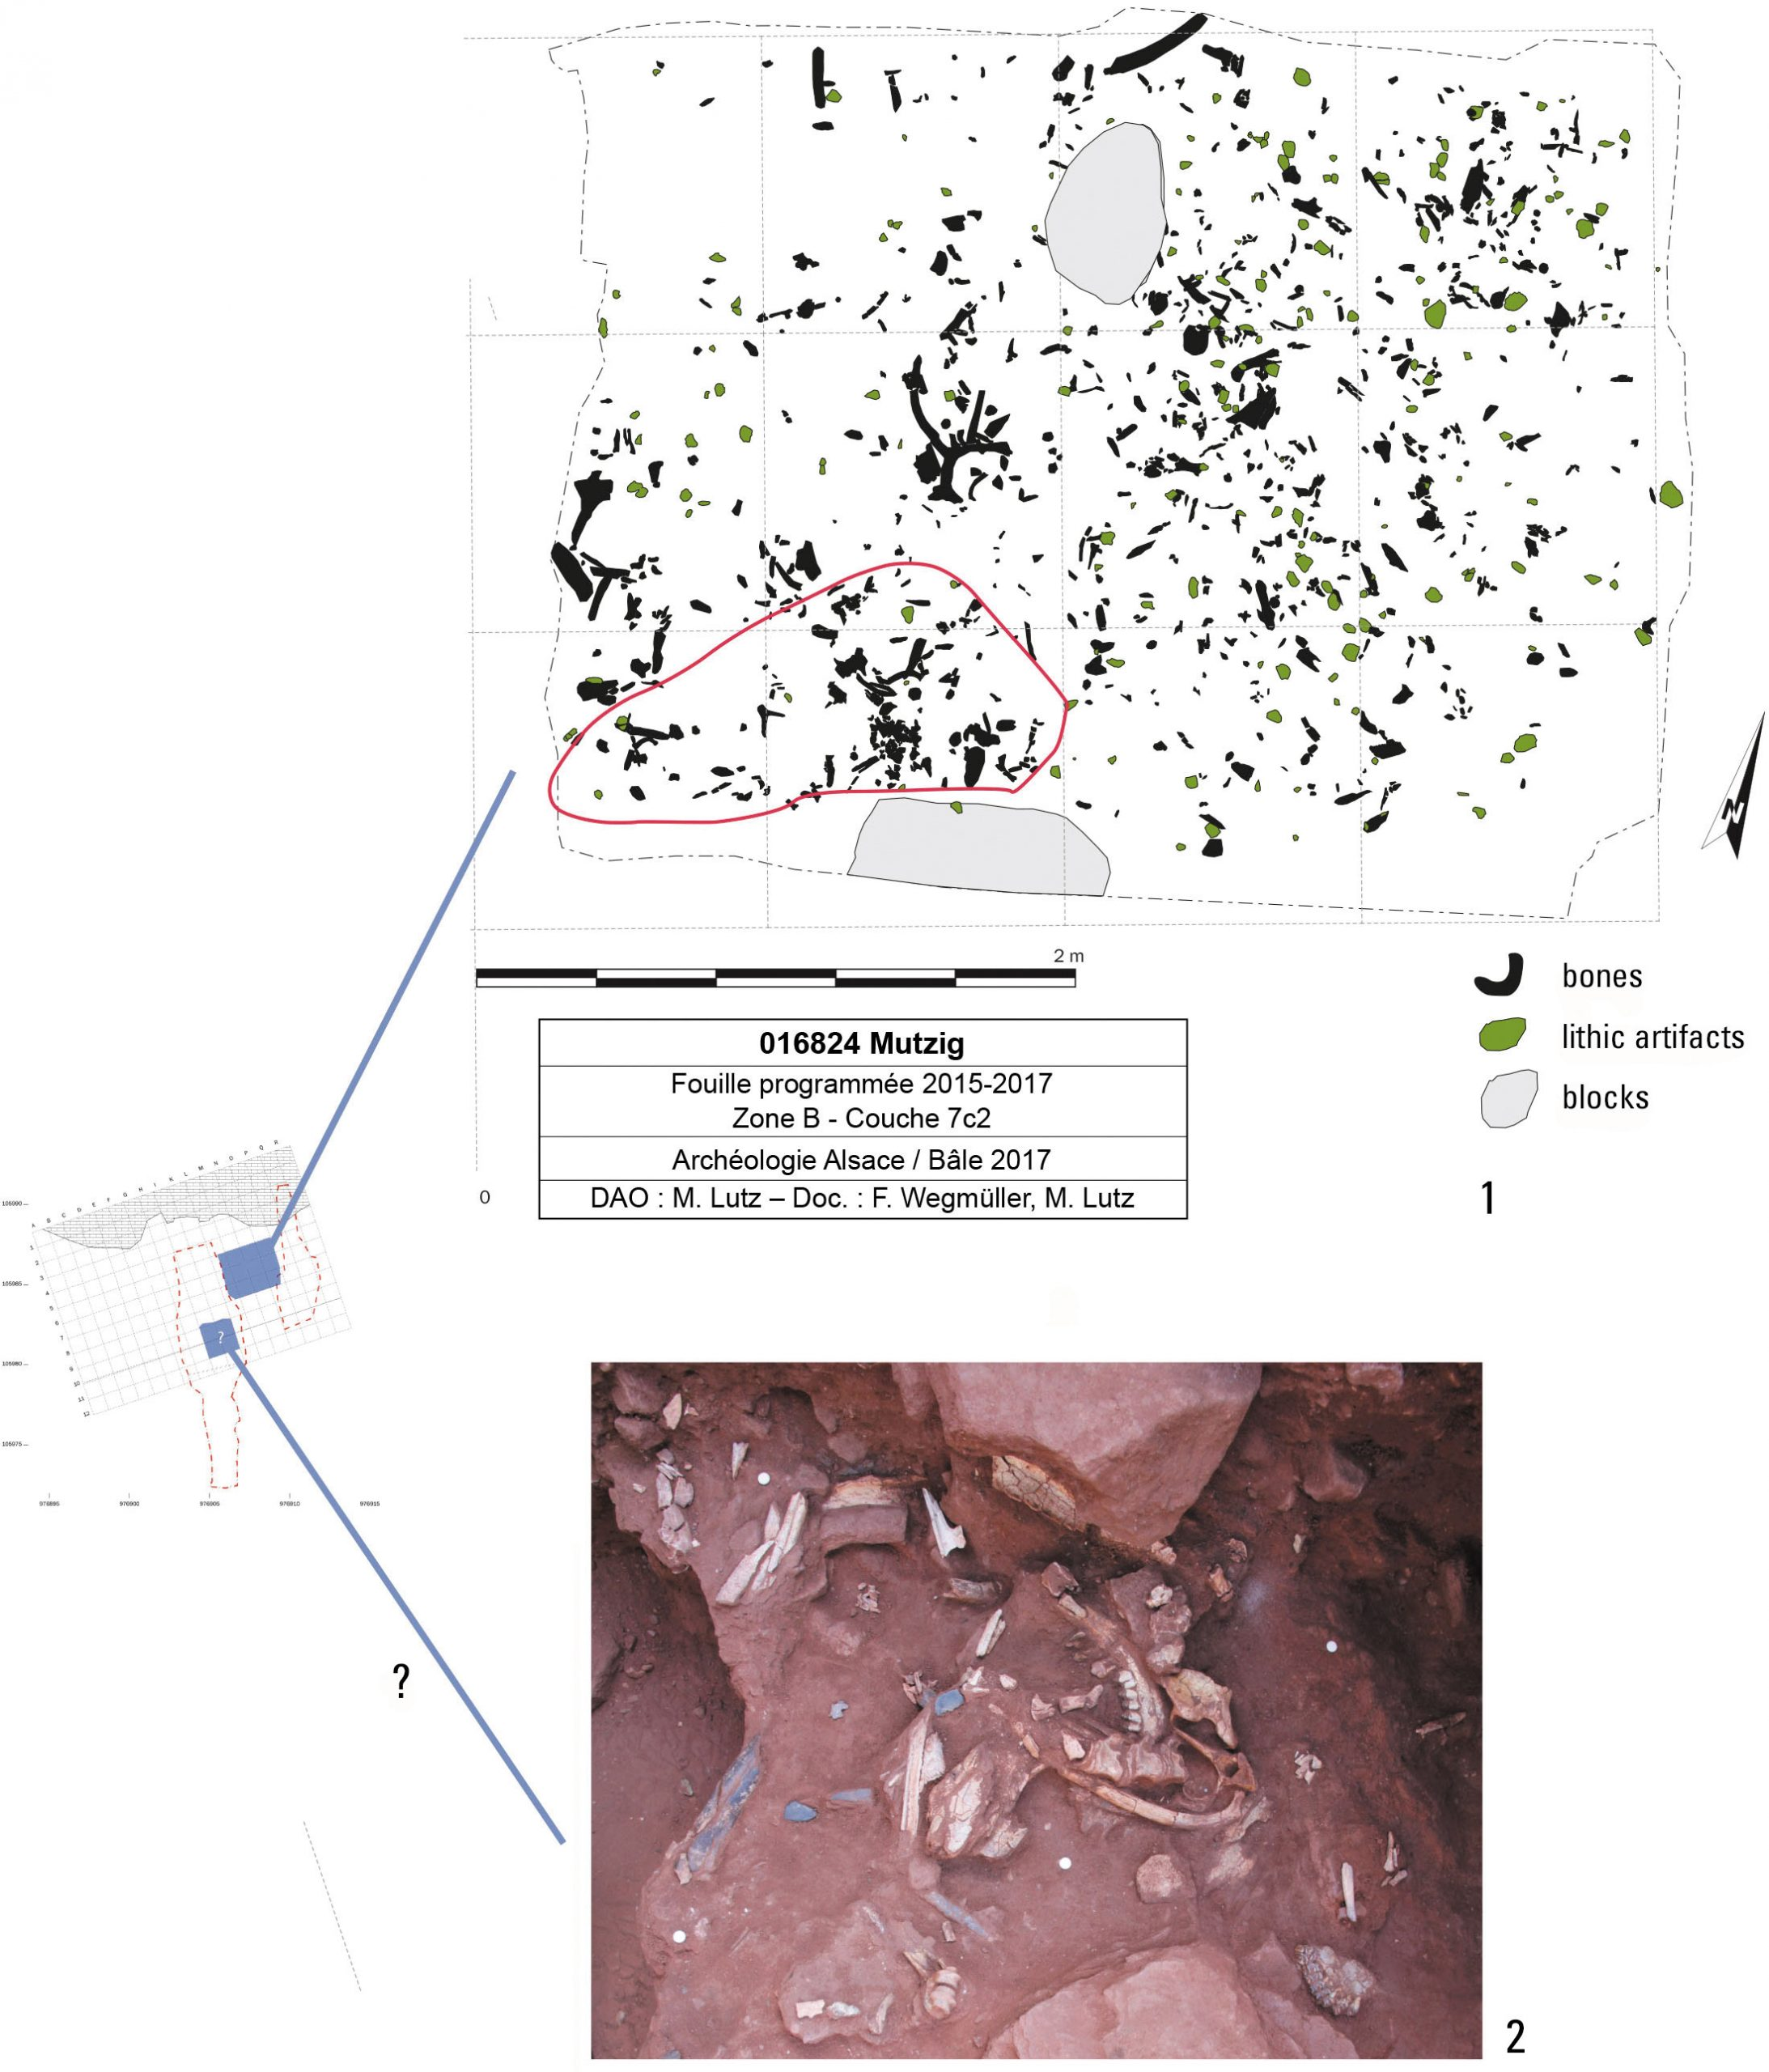 Spatial distribution of remains in Layer 7C2